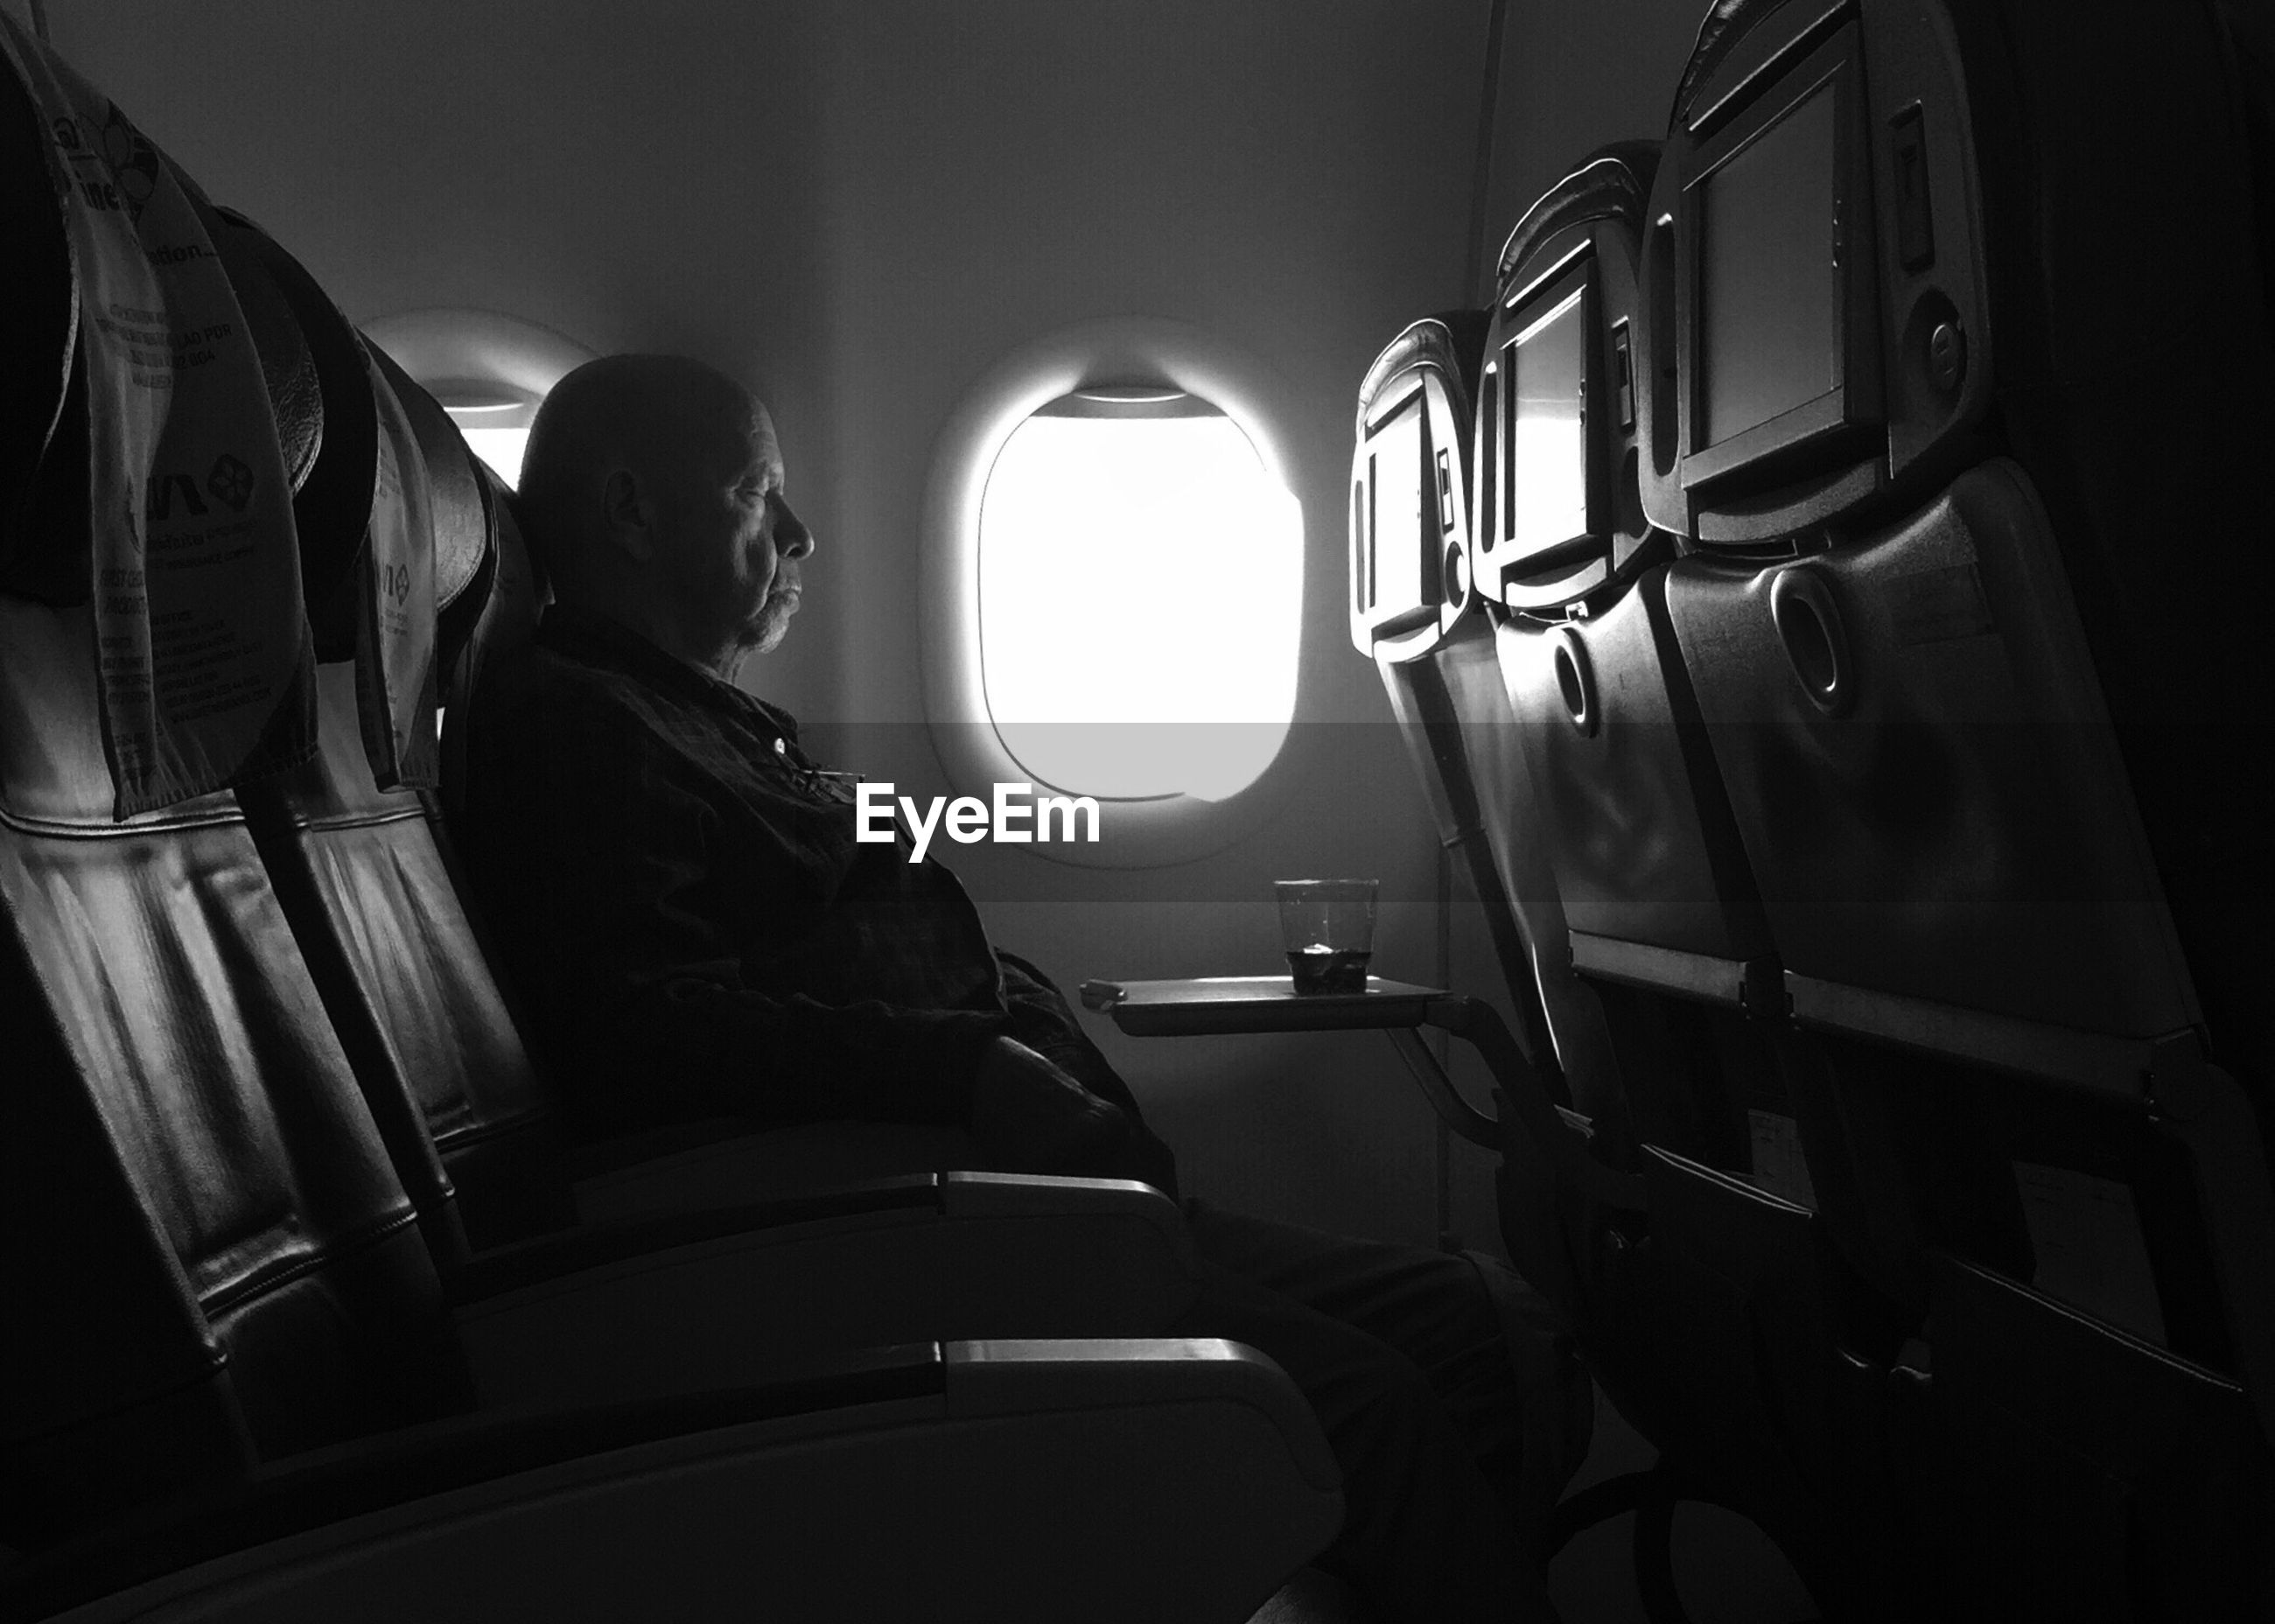 vehicle interior, transportation, sitting, vehicle seat, airplane, journey, travel, window, passenger, seat, indoors, one person, mode of transport, public transportation, air vehicle, airplane seat, flying, women, young women, day, sky, young adult, people